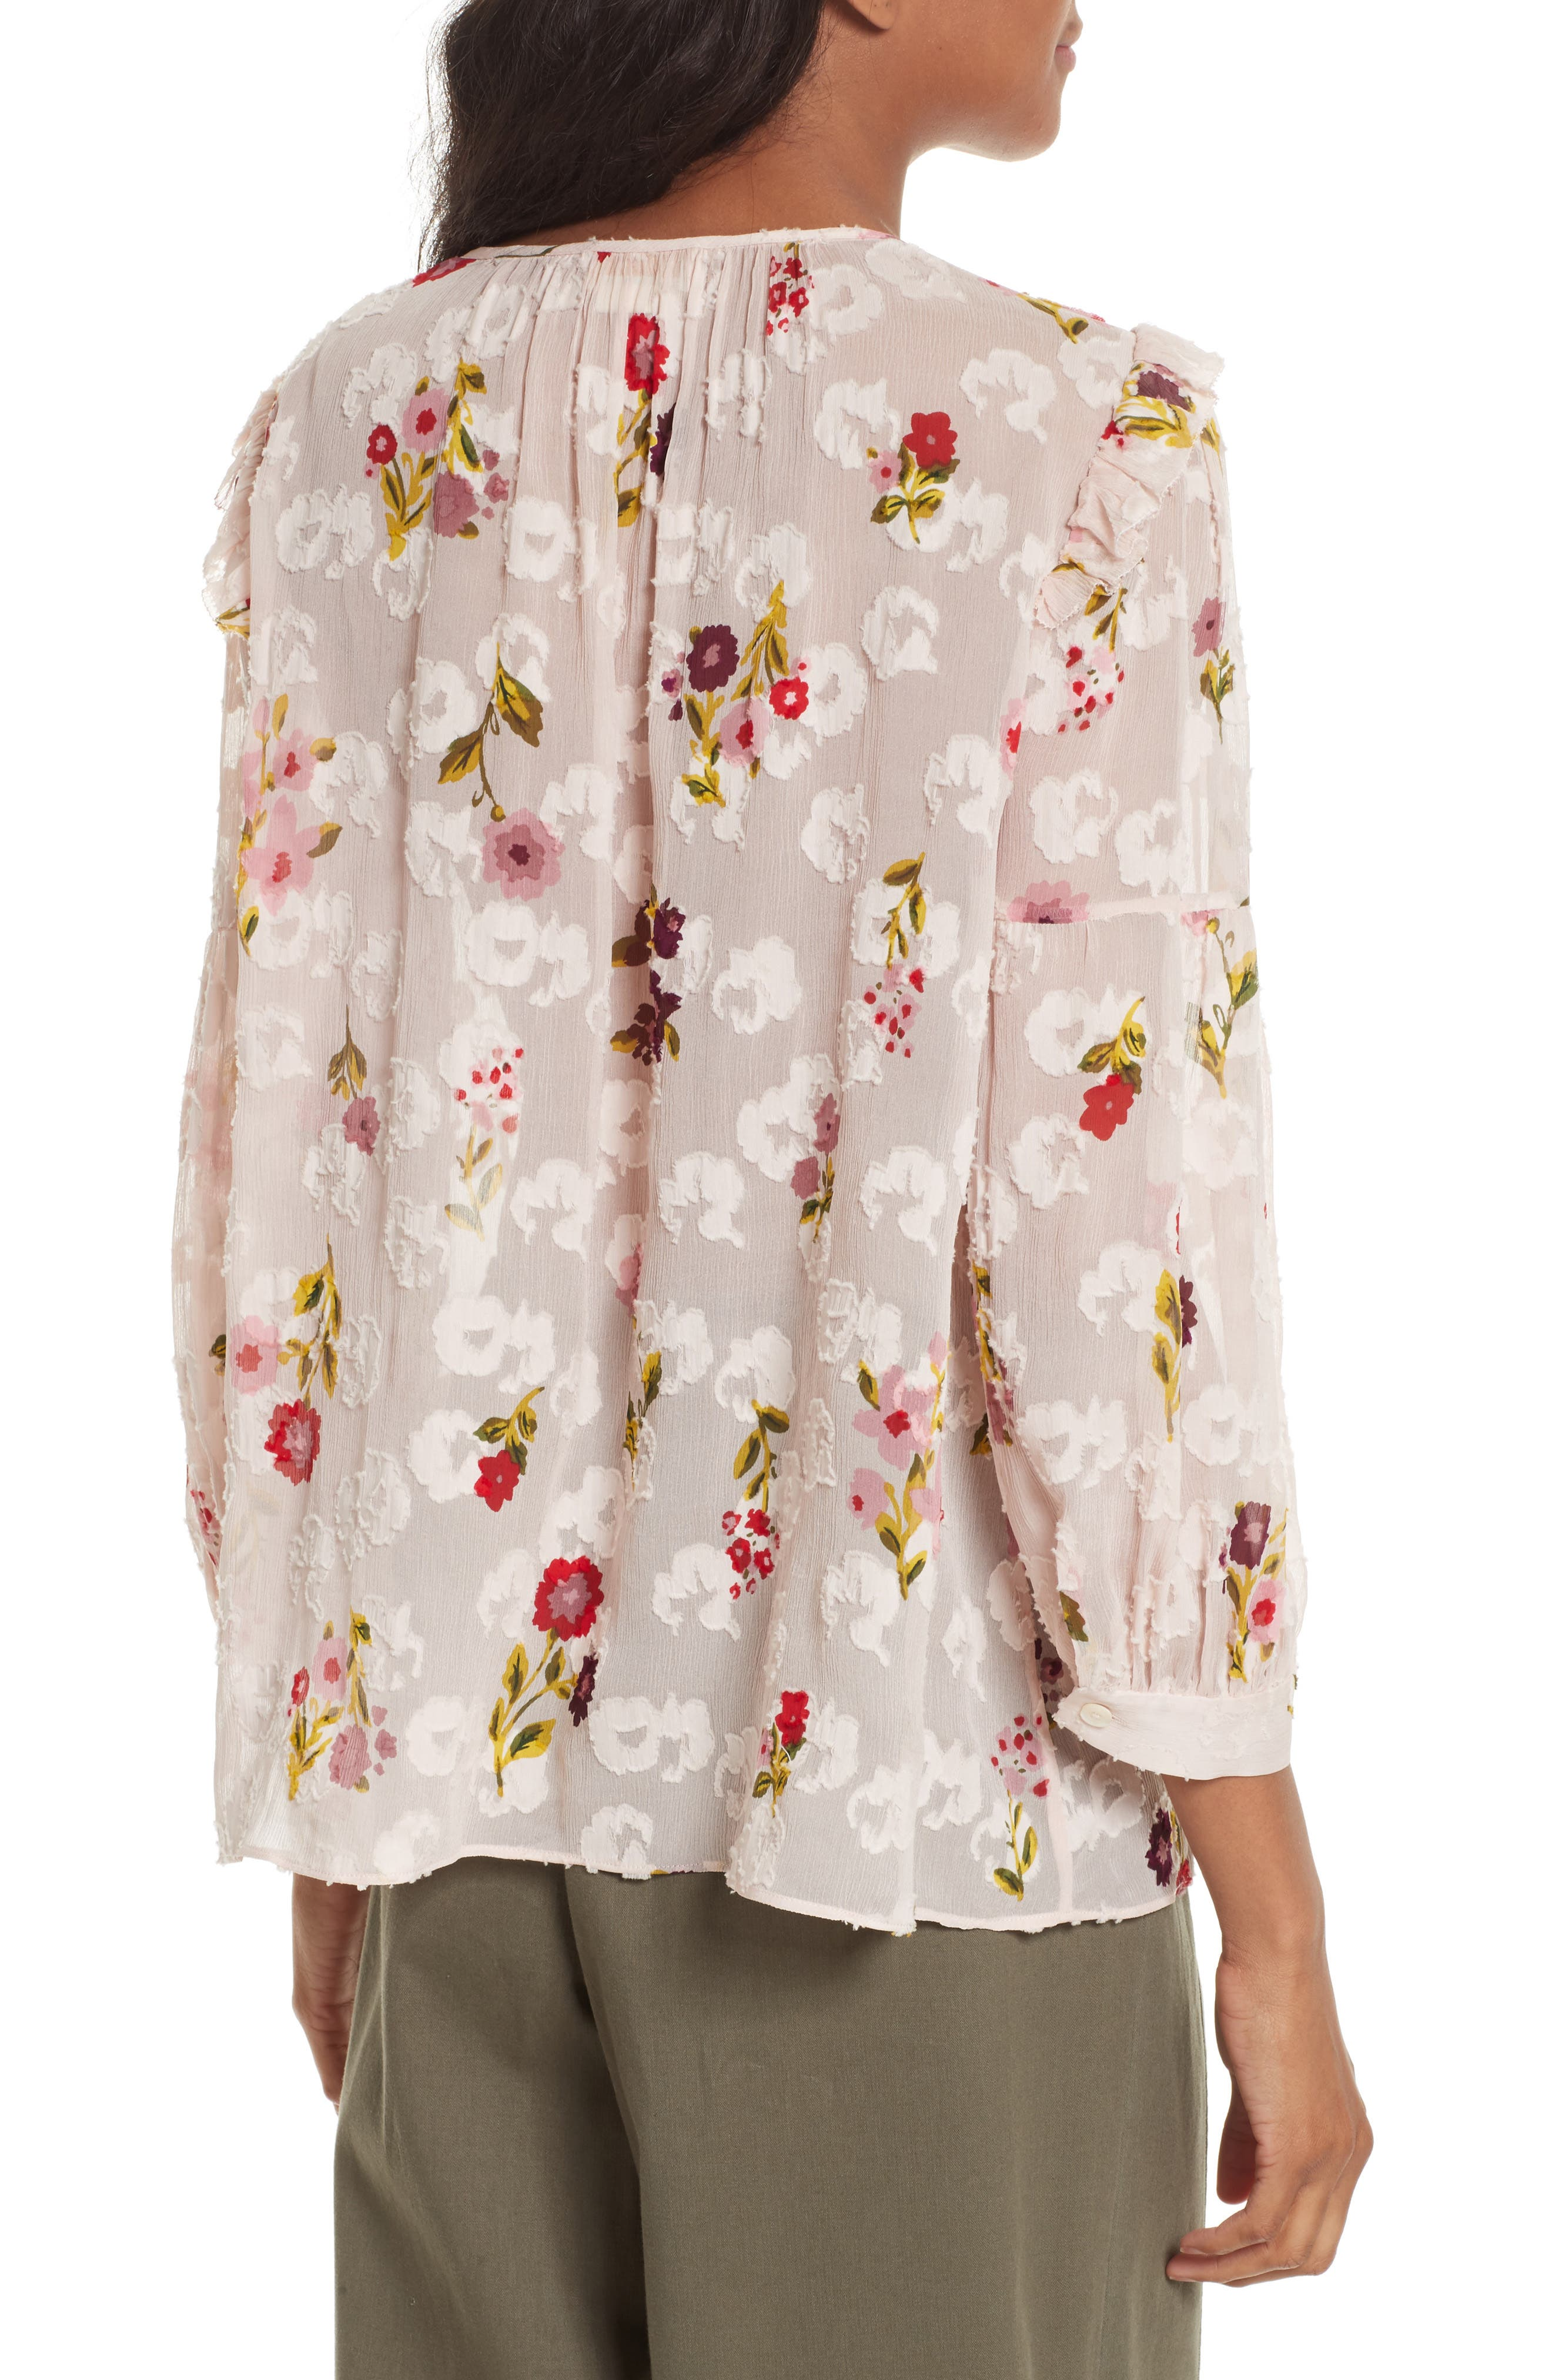 in bloom chiffon top,                             Alternate thumbnail 2, color,                             677